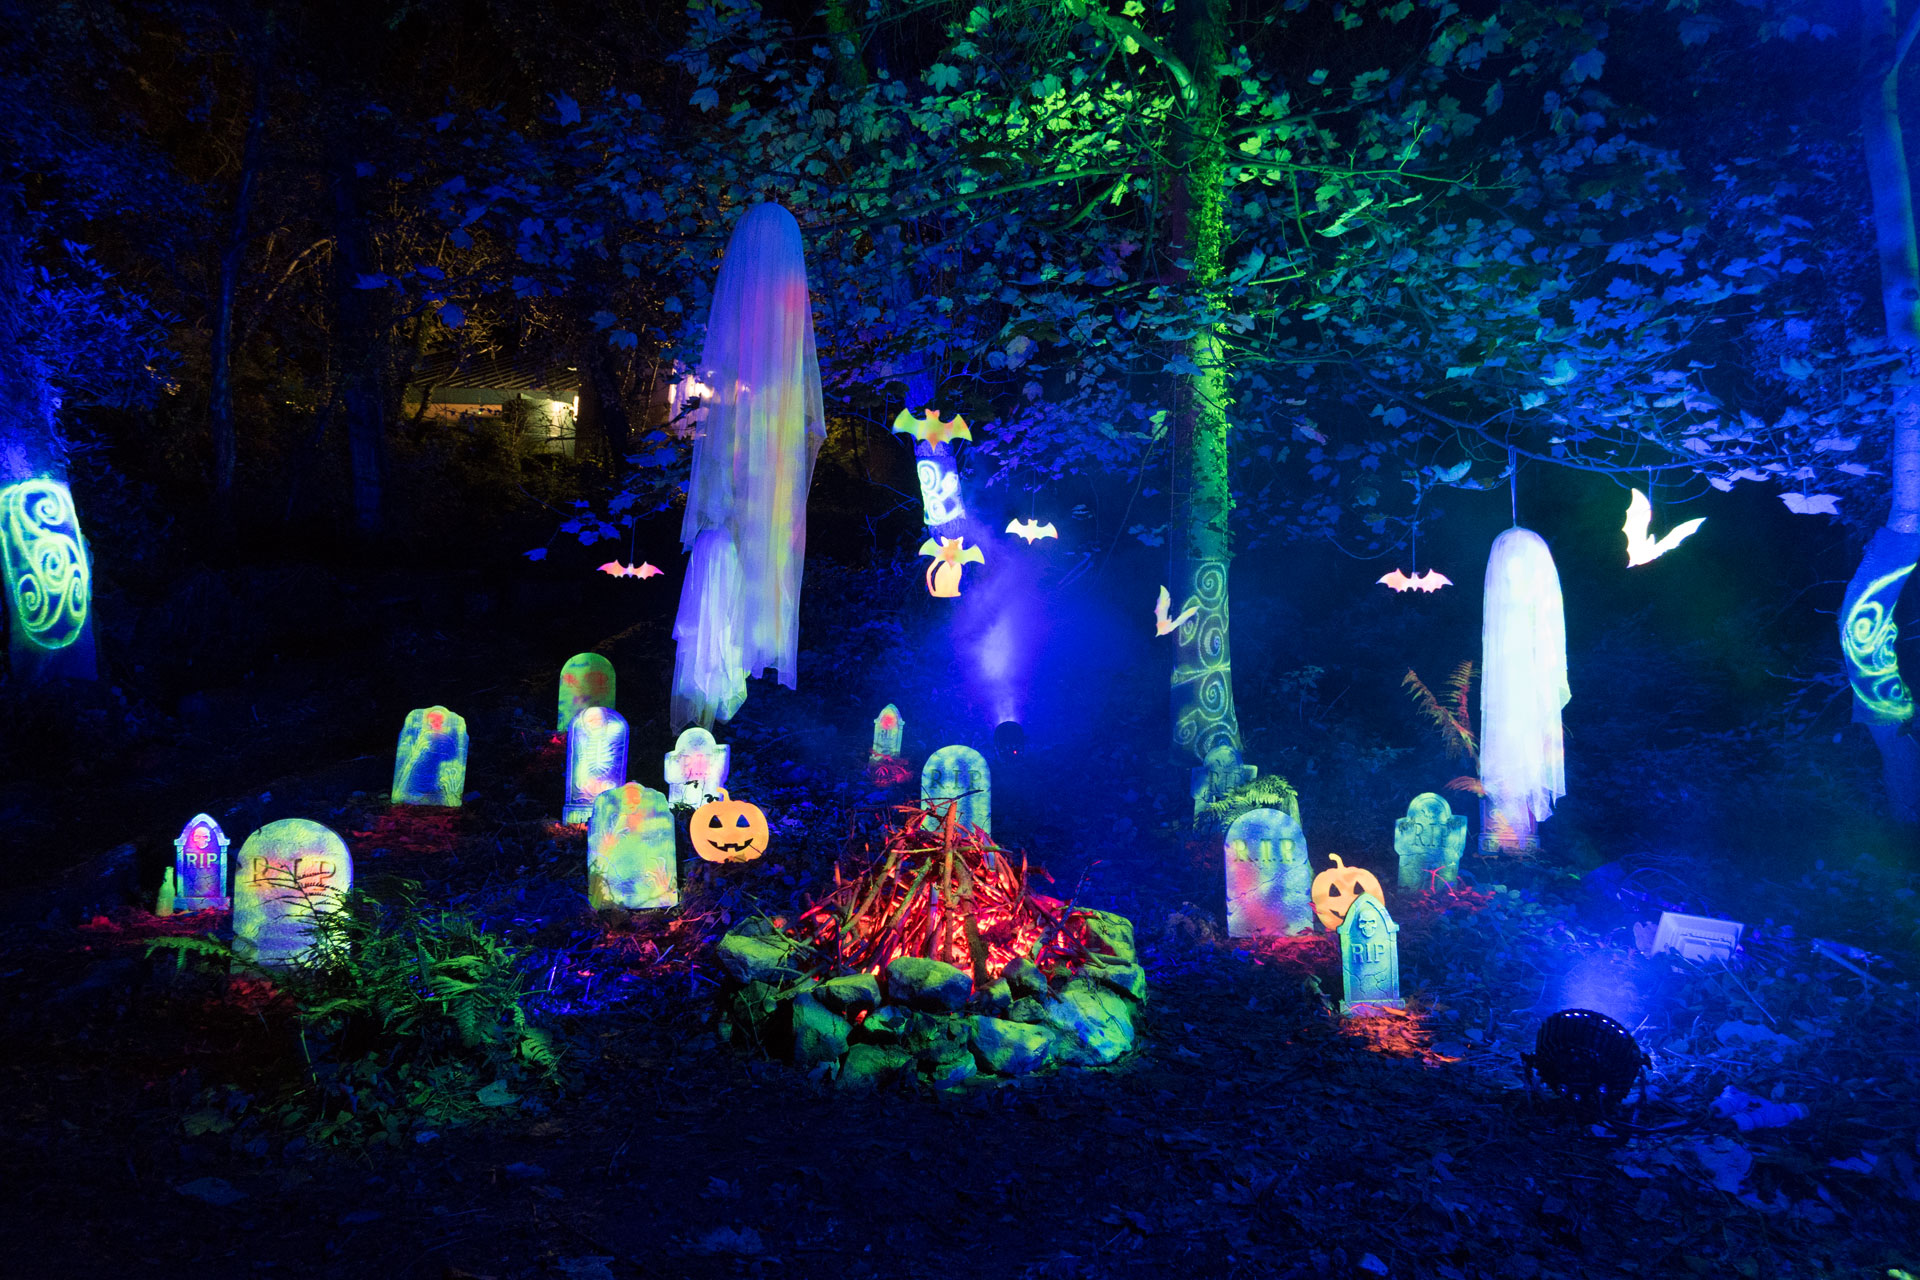 Halloween graveyard, at an outdoor event in an enchanted forest in North Wales. Created using LED lighting, UV reactive grave stones, ghosts, pumpkins bats and a cat, with a centrepiece camp fire, created using light.